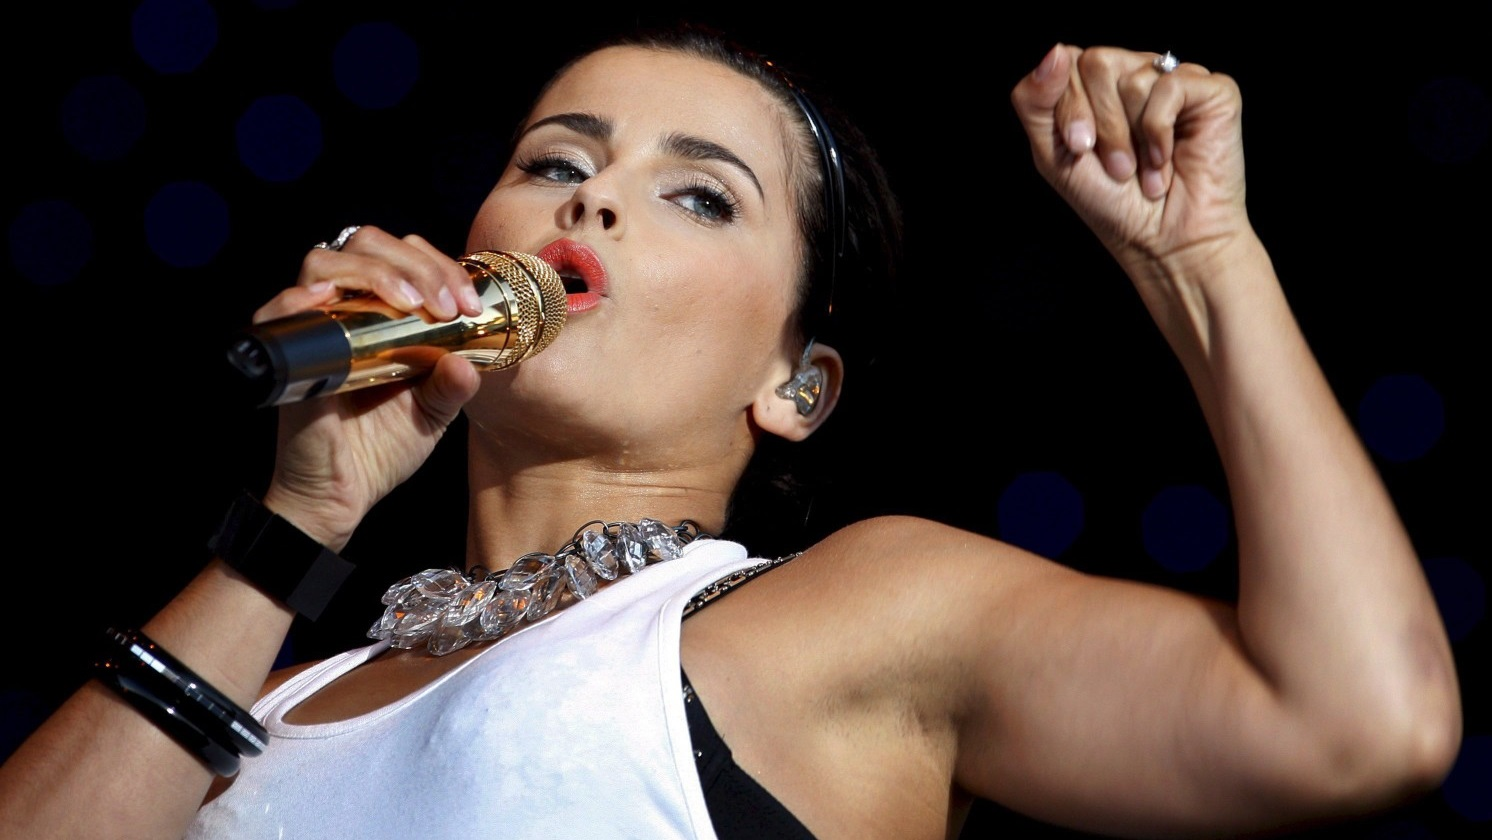 Nelly Furtado - Nude and Naked pics